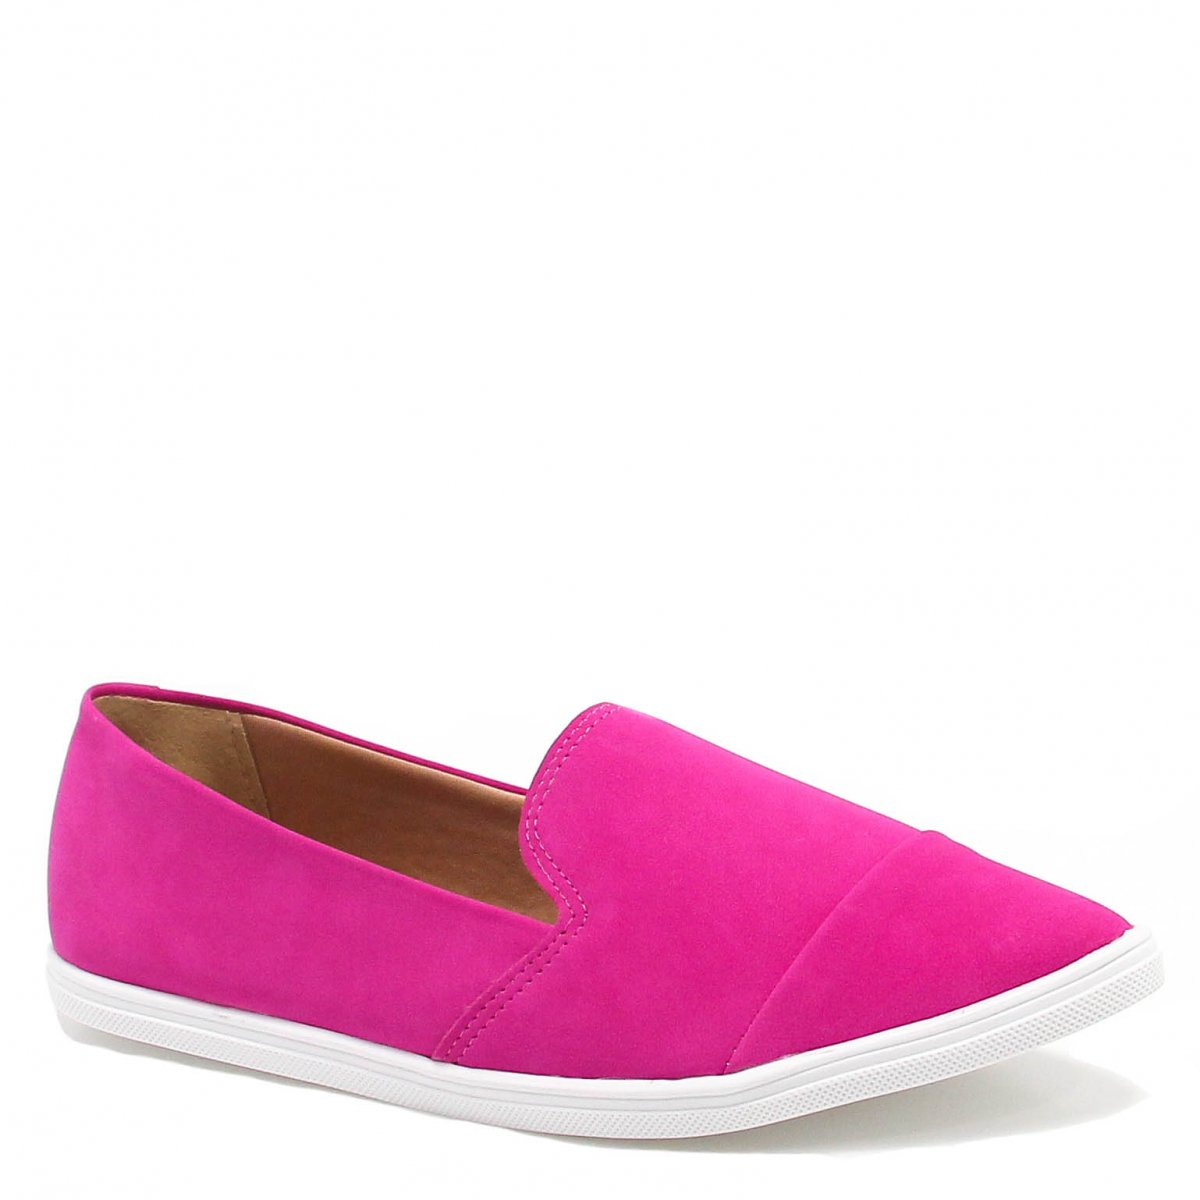 Sapatilha Slipper Zariff Shoes Cap Toe Rosa